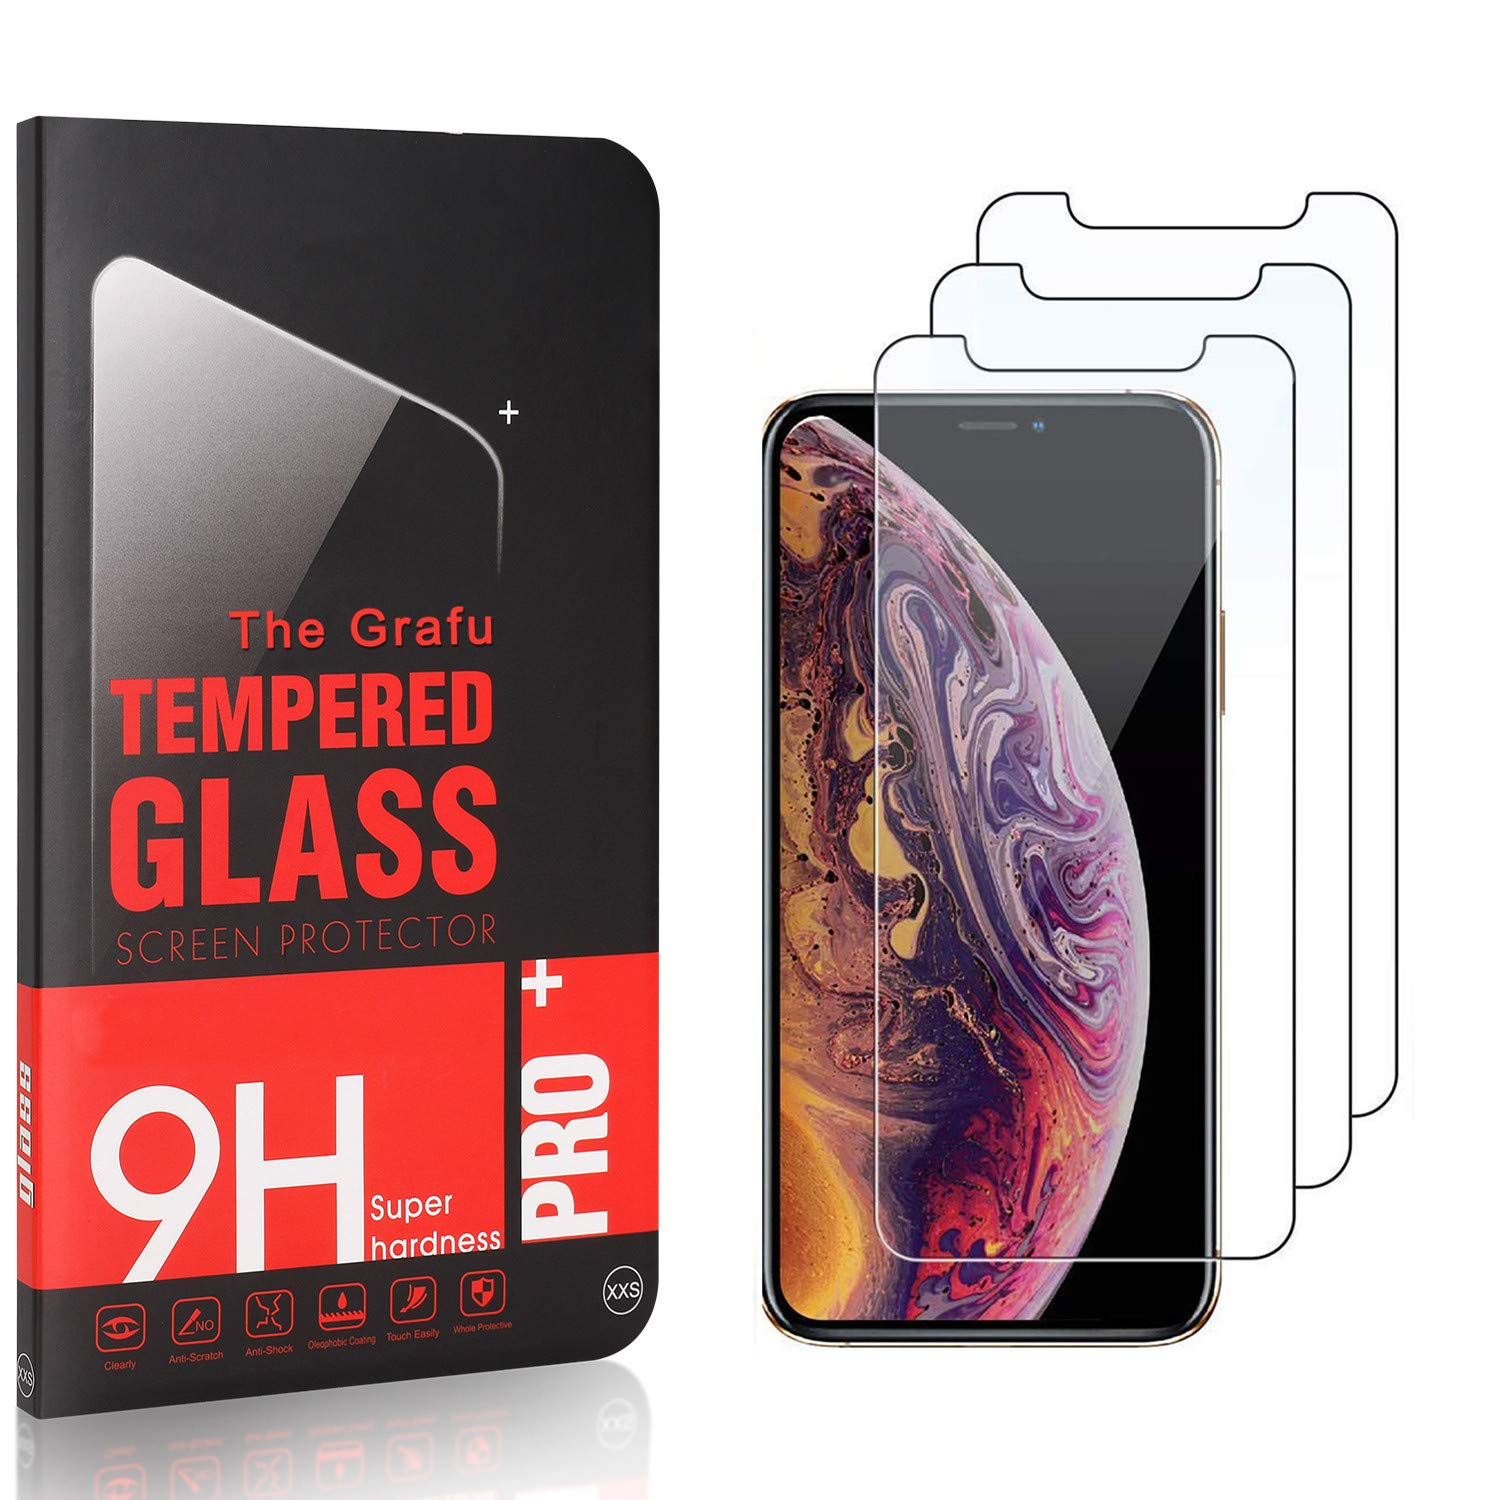 Ultra Clear 9H Tempered Glass Screen Protector Compatible with iPhone 11 Pro Max The Grafu Screen Protector for iPhone 11 Pro Max Easy Installation 4 Pack